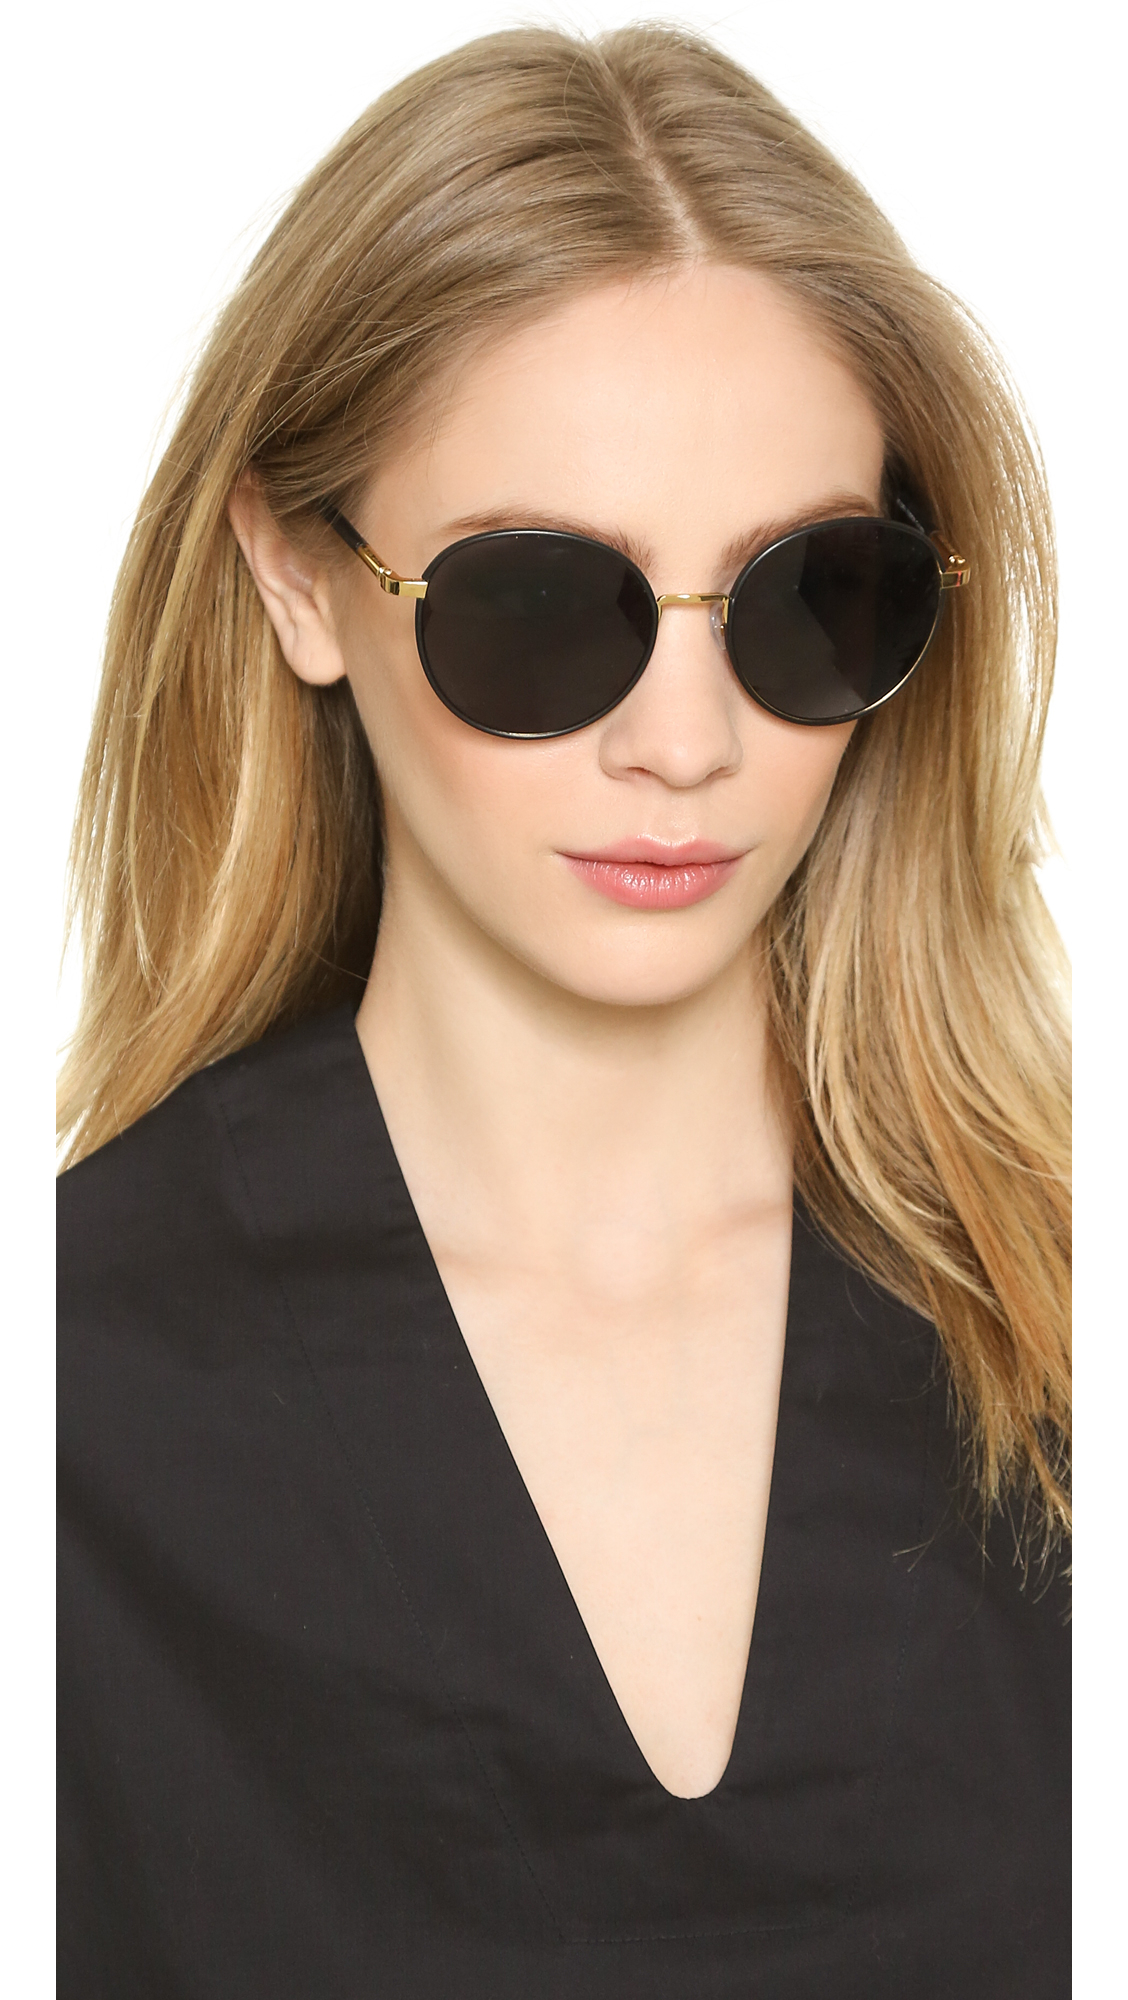 The Row Sunglasses Goldgrey Round Black mN0wn8